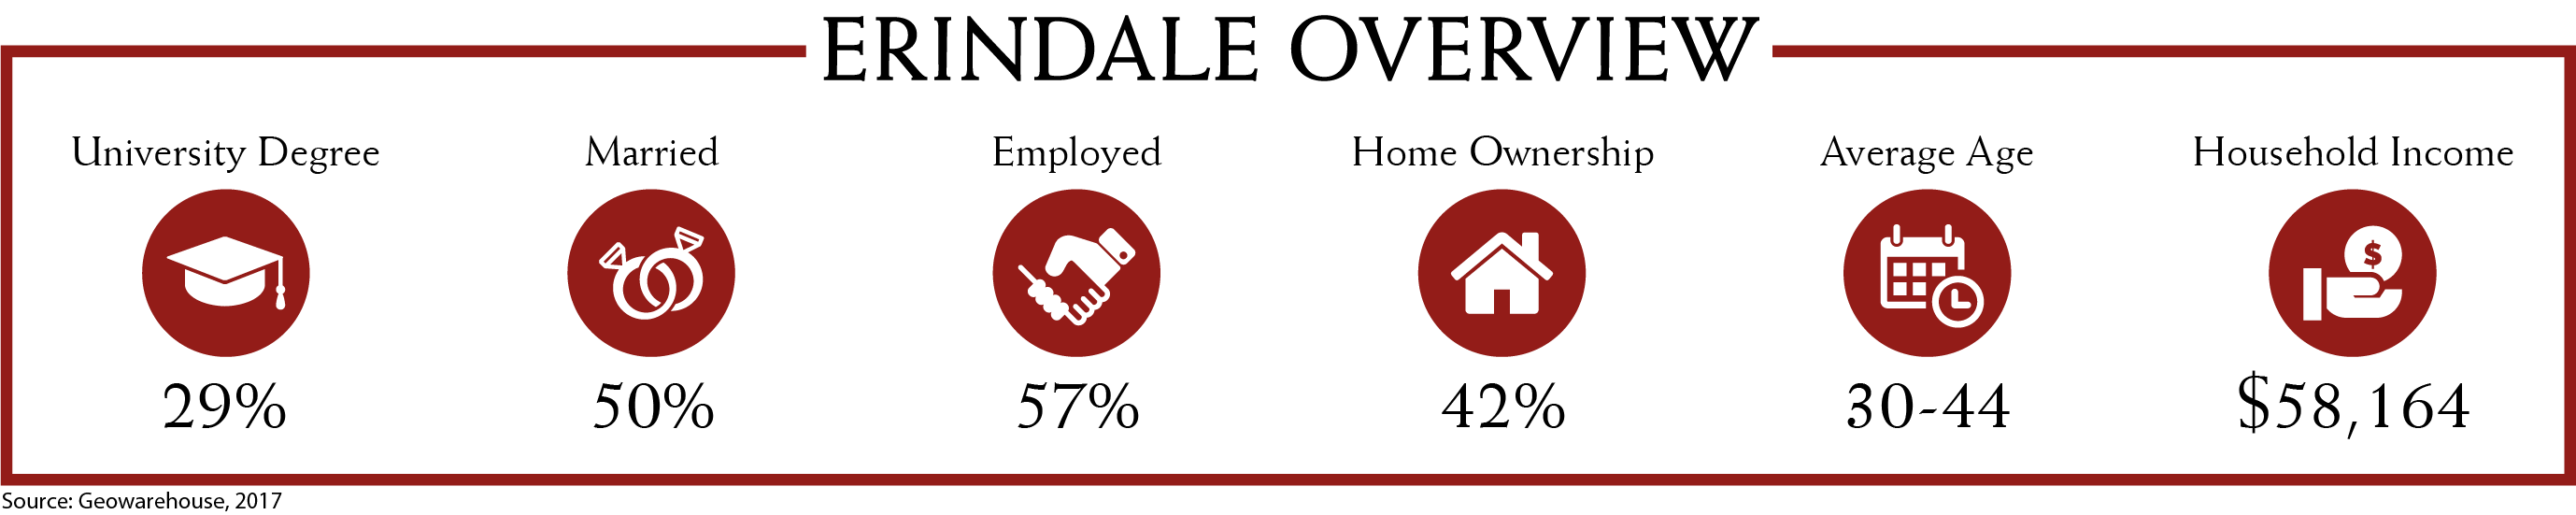 Erindale Demographics